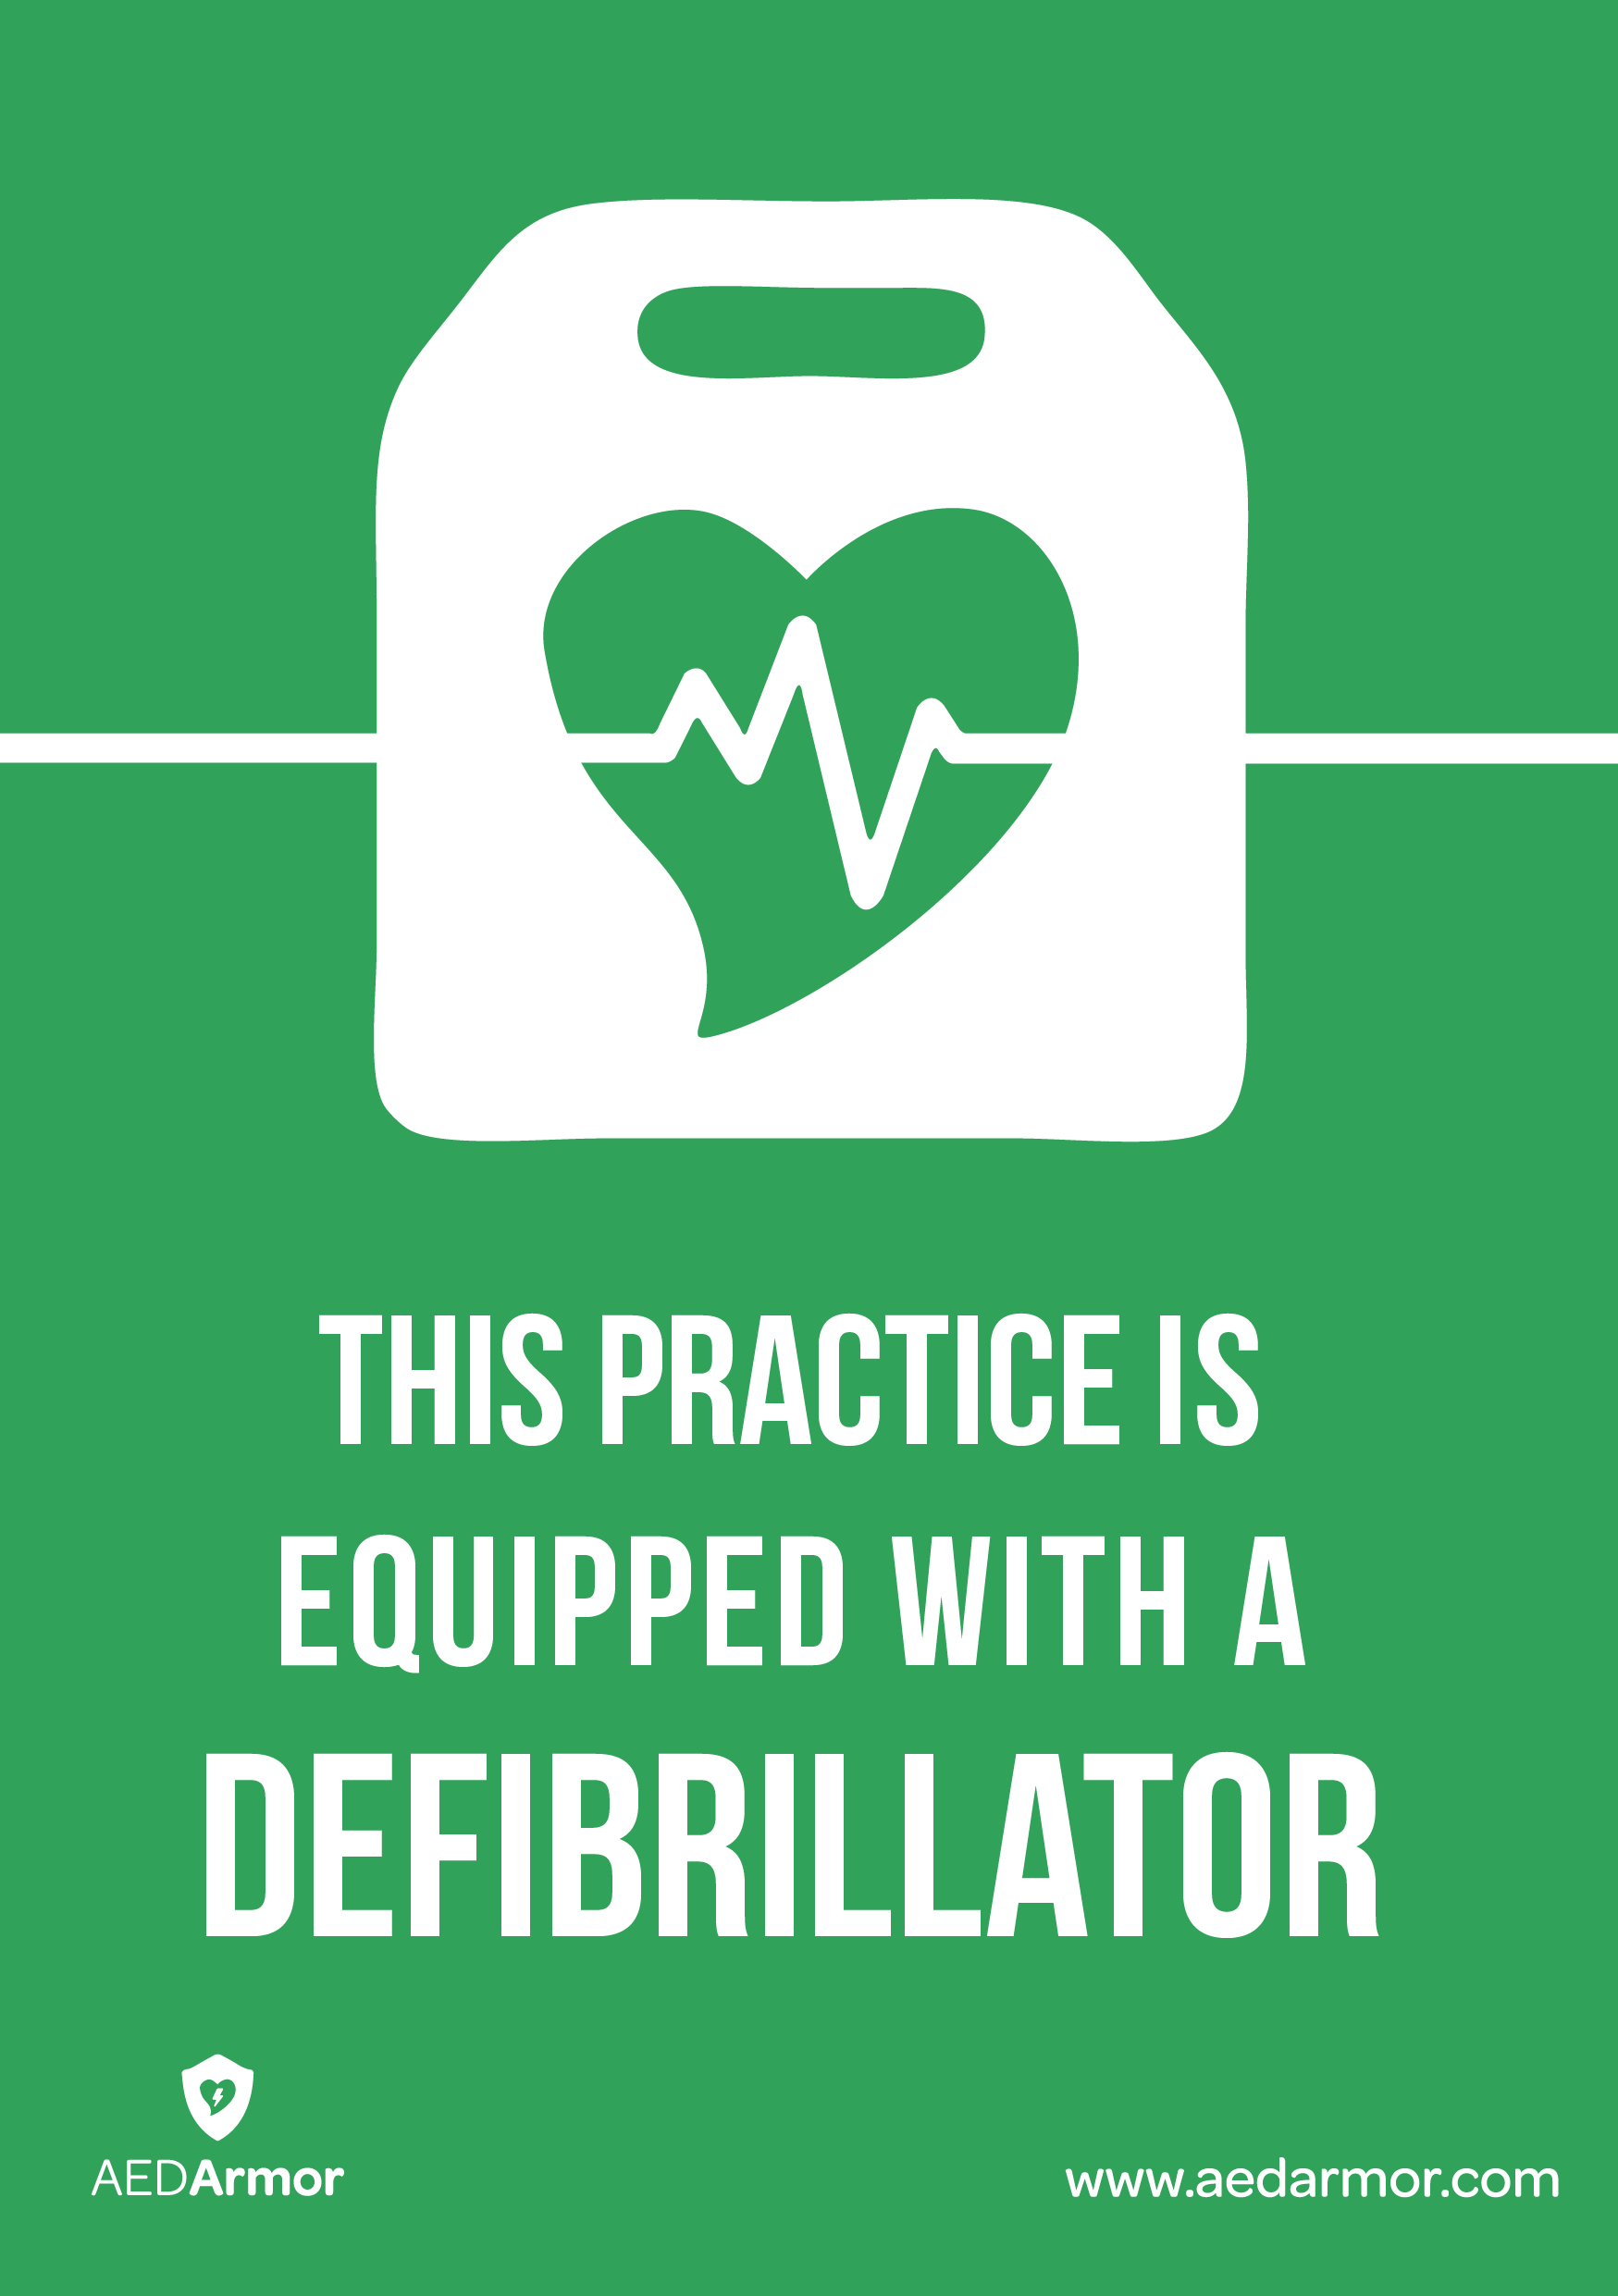 'This practice is equipped with a defibrillator' A5 Sticker